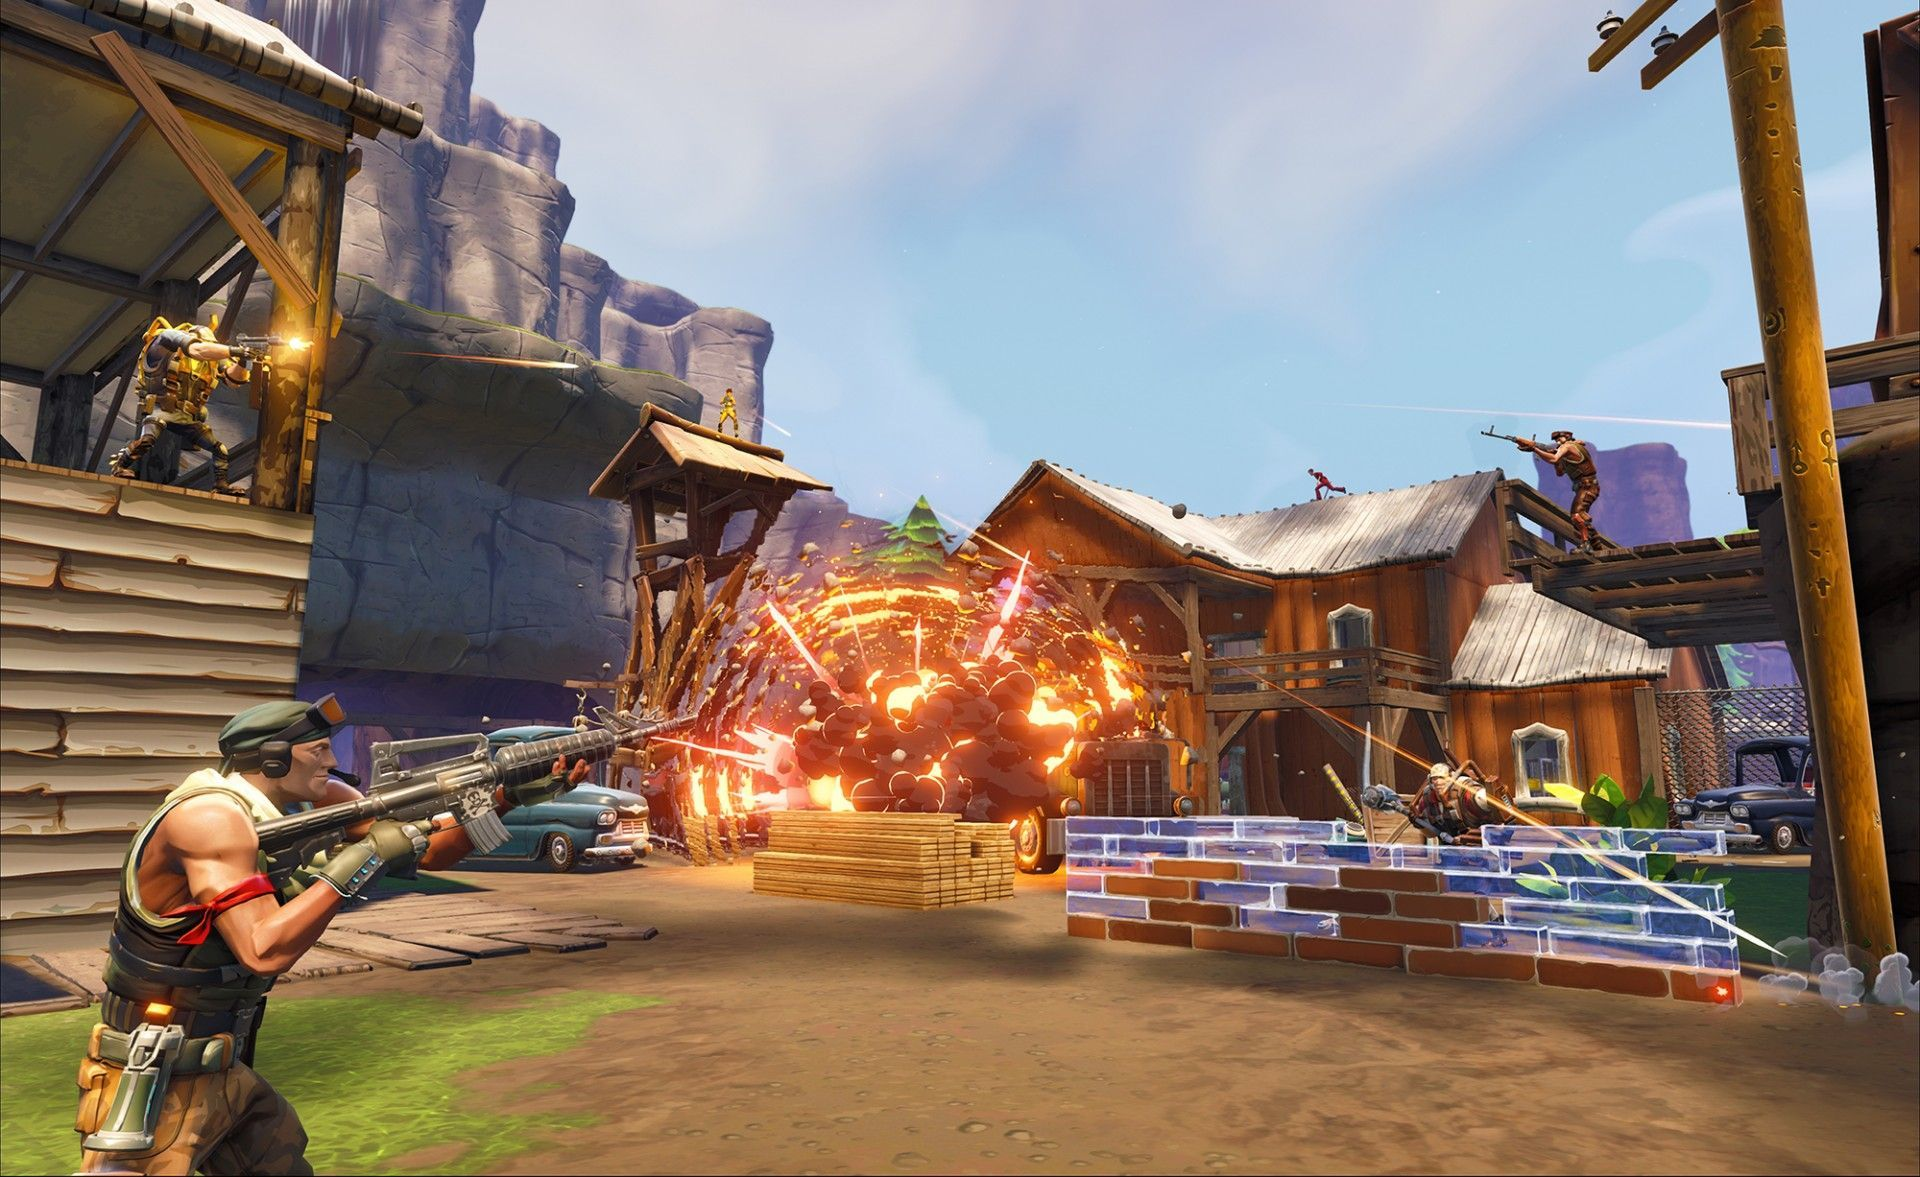 fortnite battle royale guide our tips for gearing up and finding loot quickly and even our guide to gettings the best performance out of your system - how long is the average fortnite game